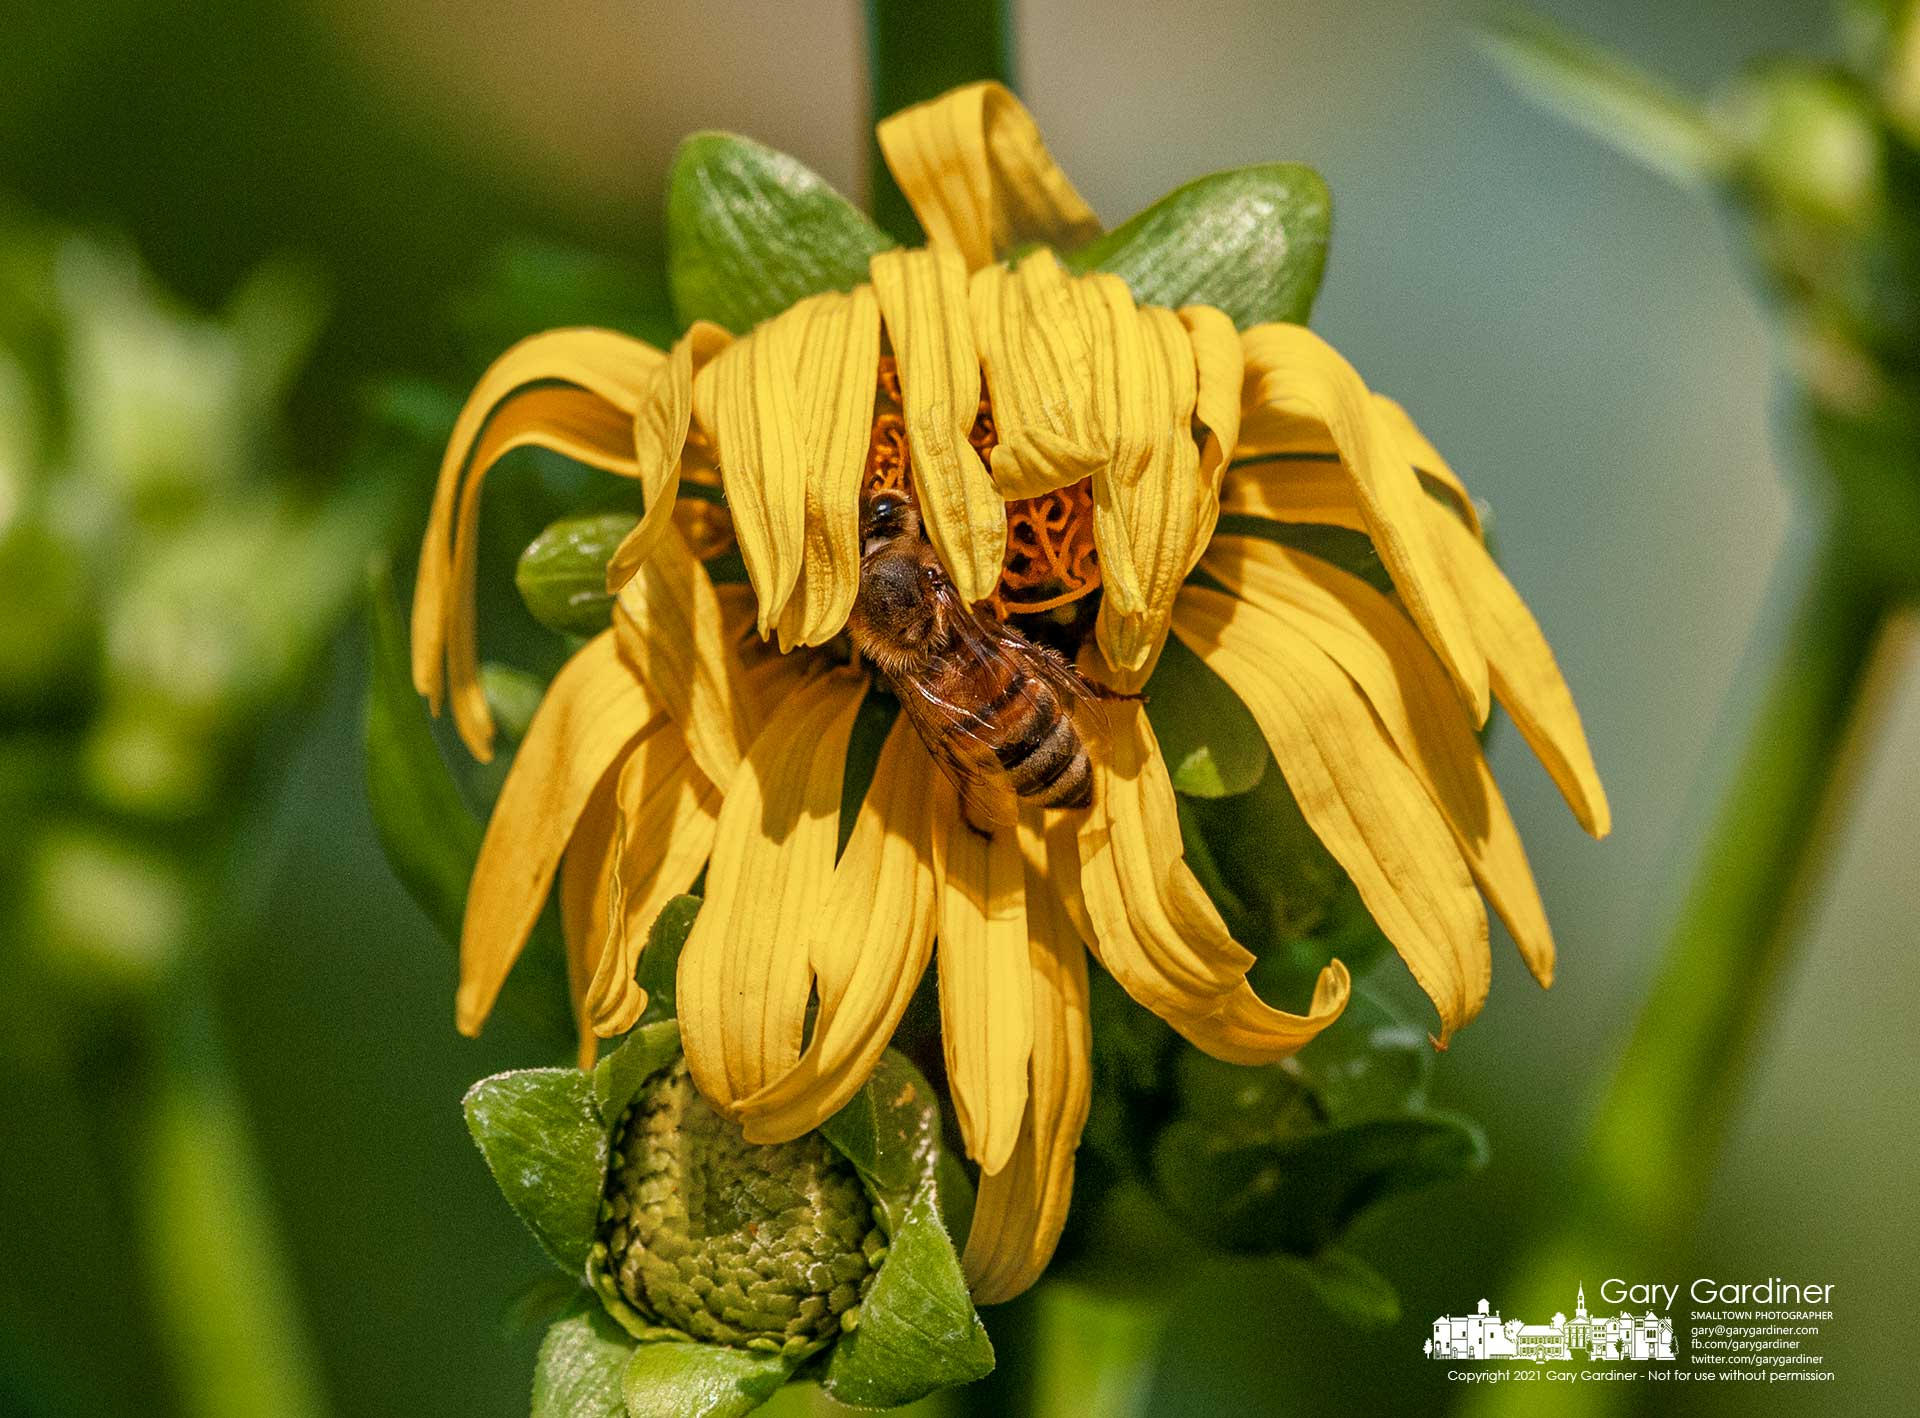 A honey bee moves wilted flower petals out of the way to make its way to the nectar of a wildflower growing in the wetlands at Highlands Aquatic Park. My Final Photo for July 27, 2021.